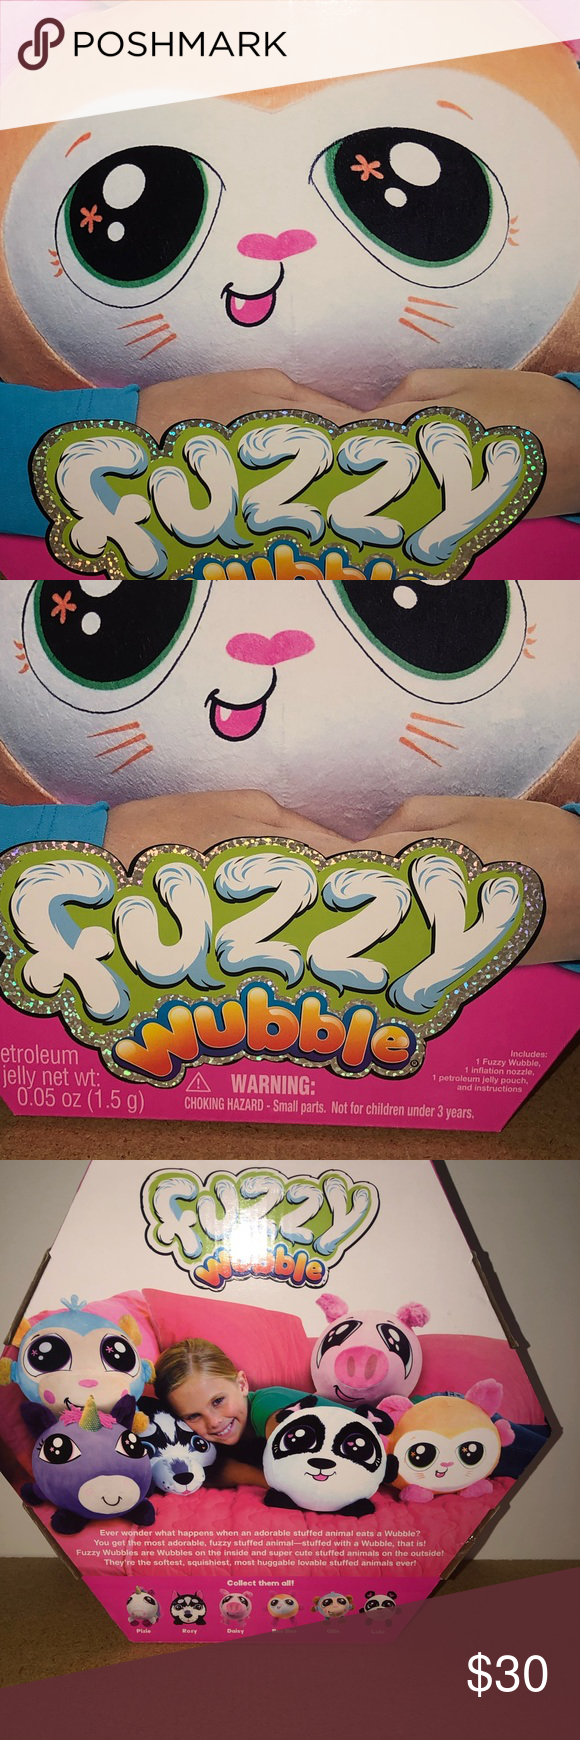 Fuzzy Wubble Bee Bee The Cat New Fuzzy Wubble Bee Bee The Cat New Condition Is New Shipped With Usps First Class Package Highlights Age Fuzzy Cats Bee